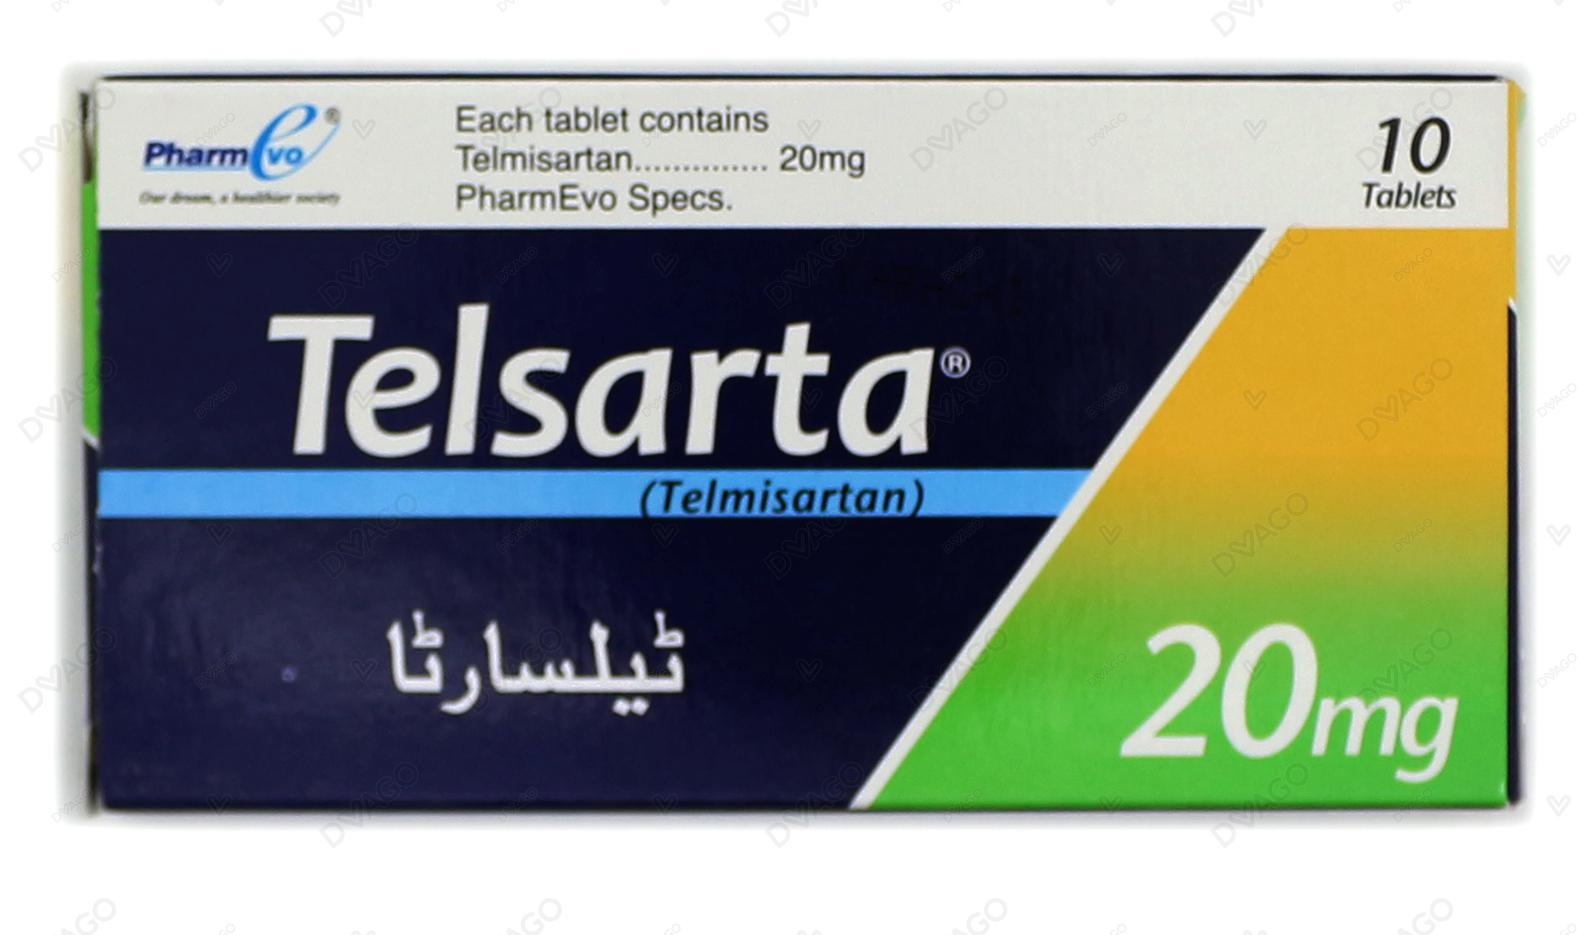 Telsarta Tablets 20mg 10's